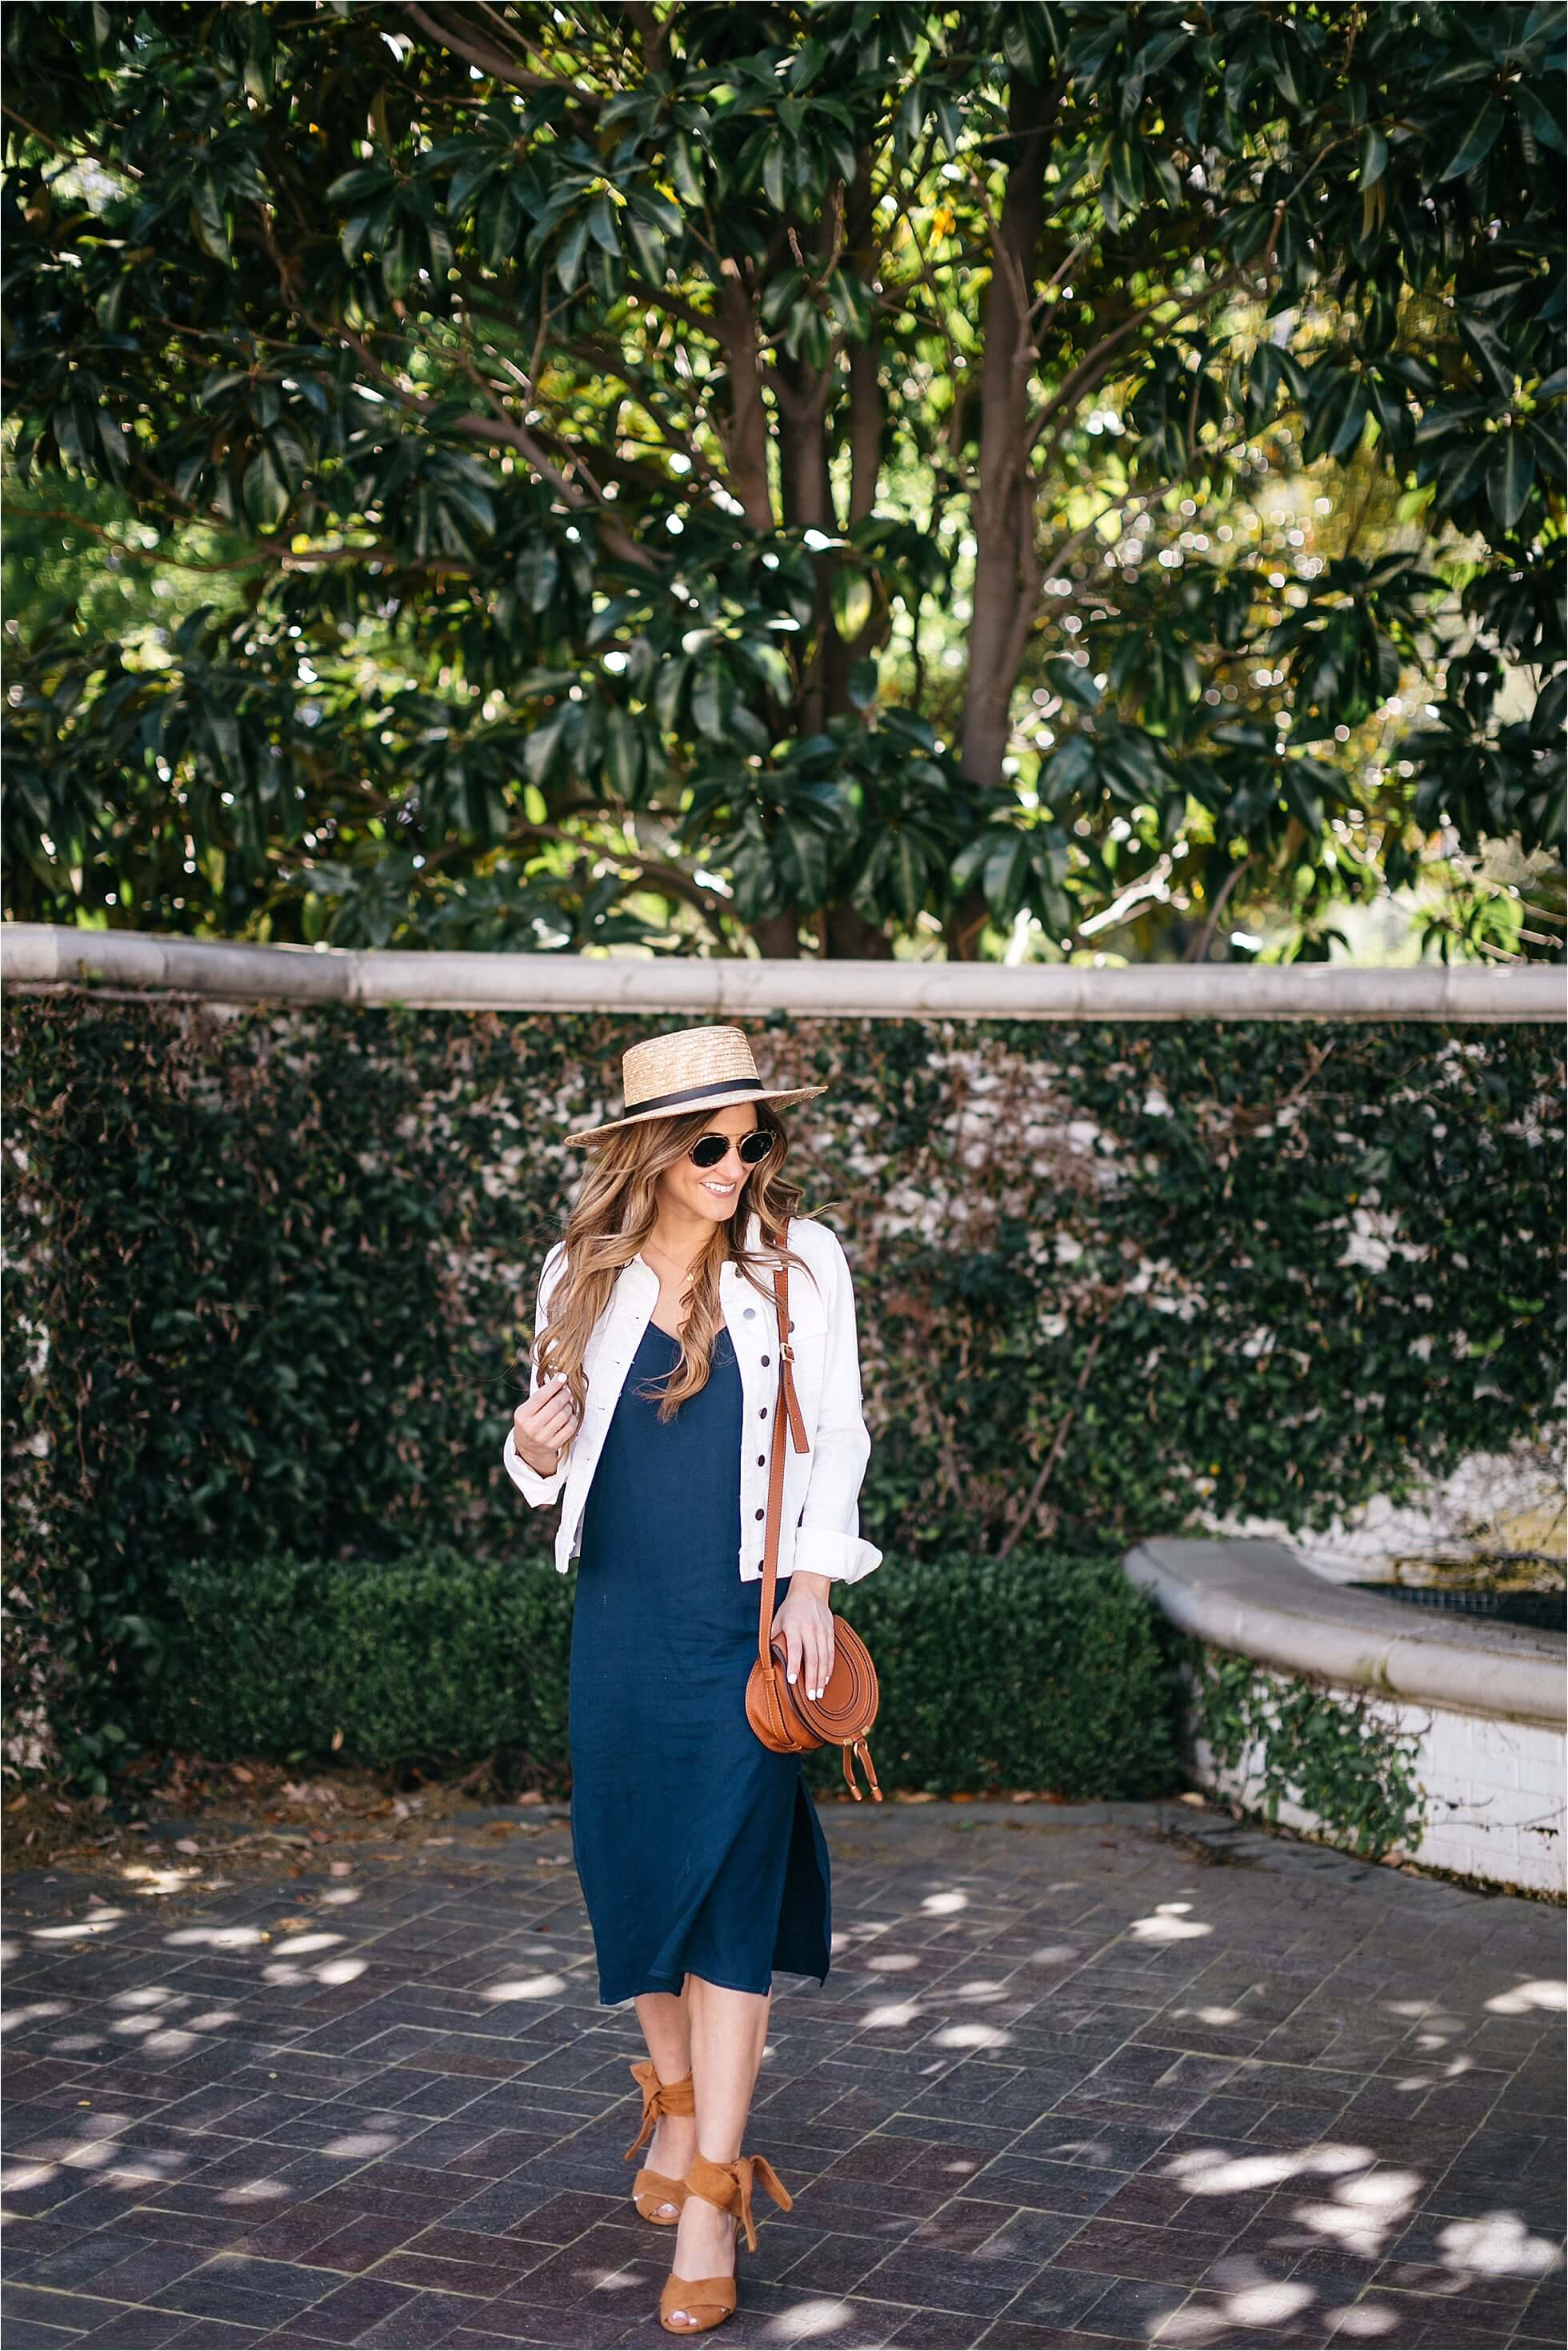 how to style a slip dress, boater hat, chloe drew bag, spring outfit